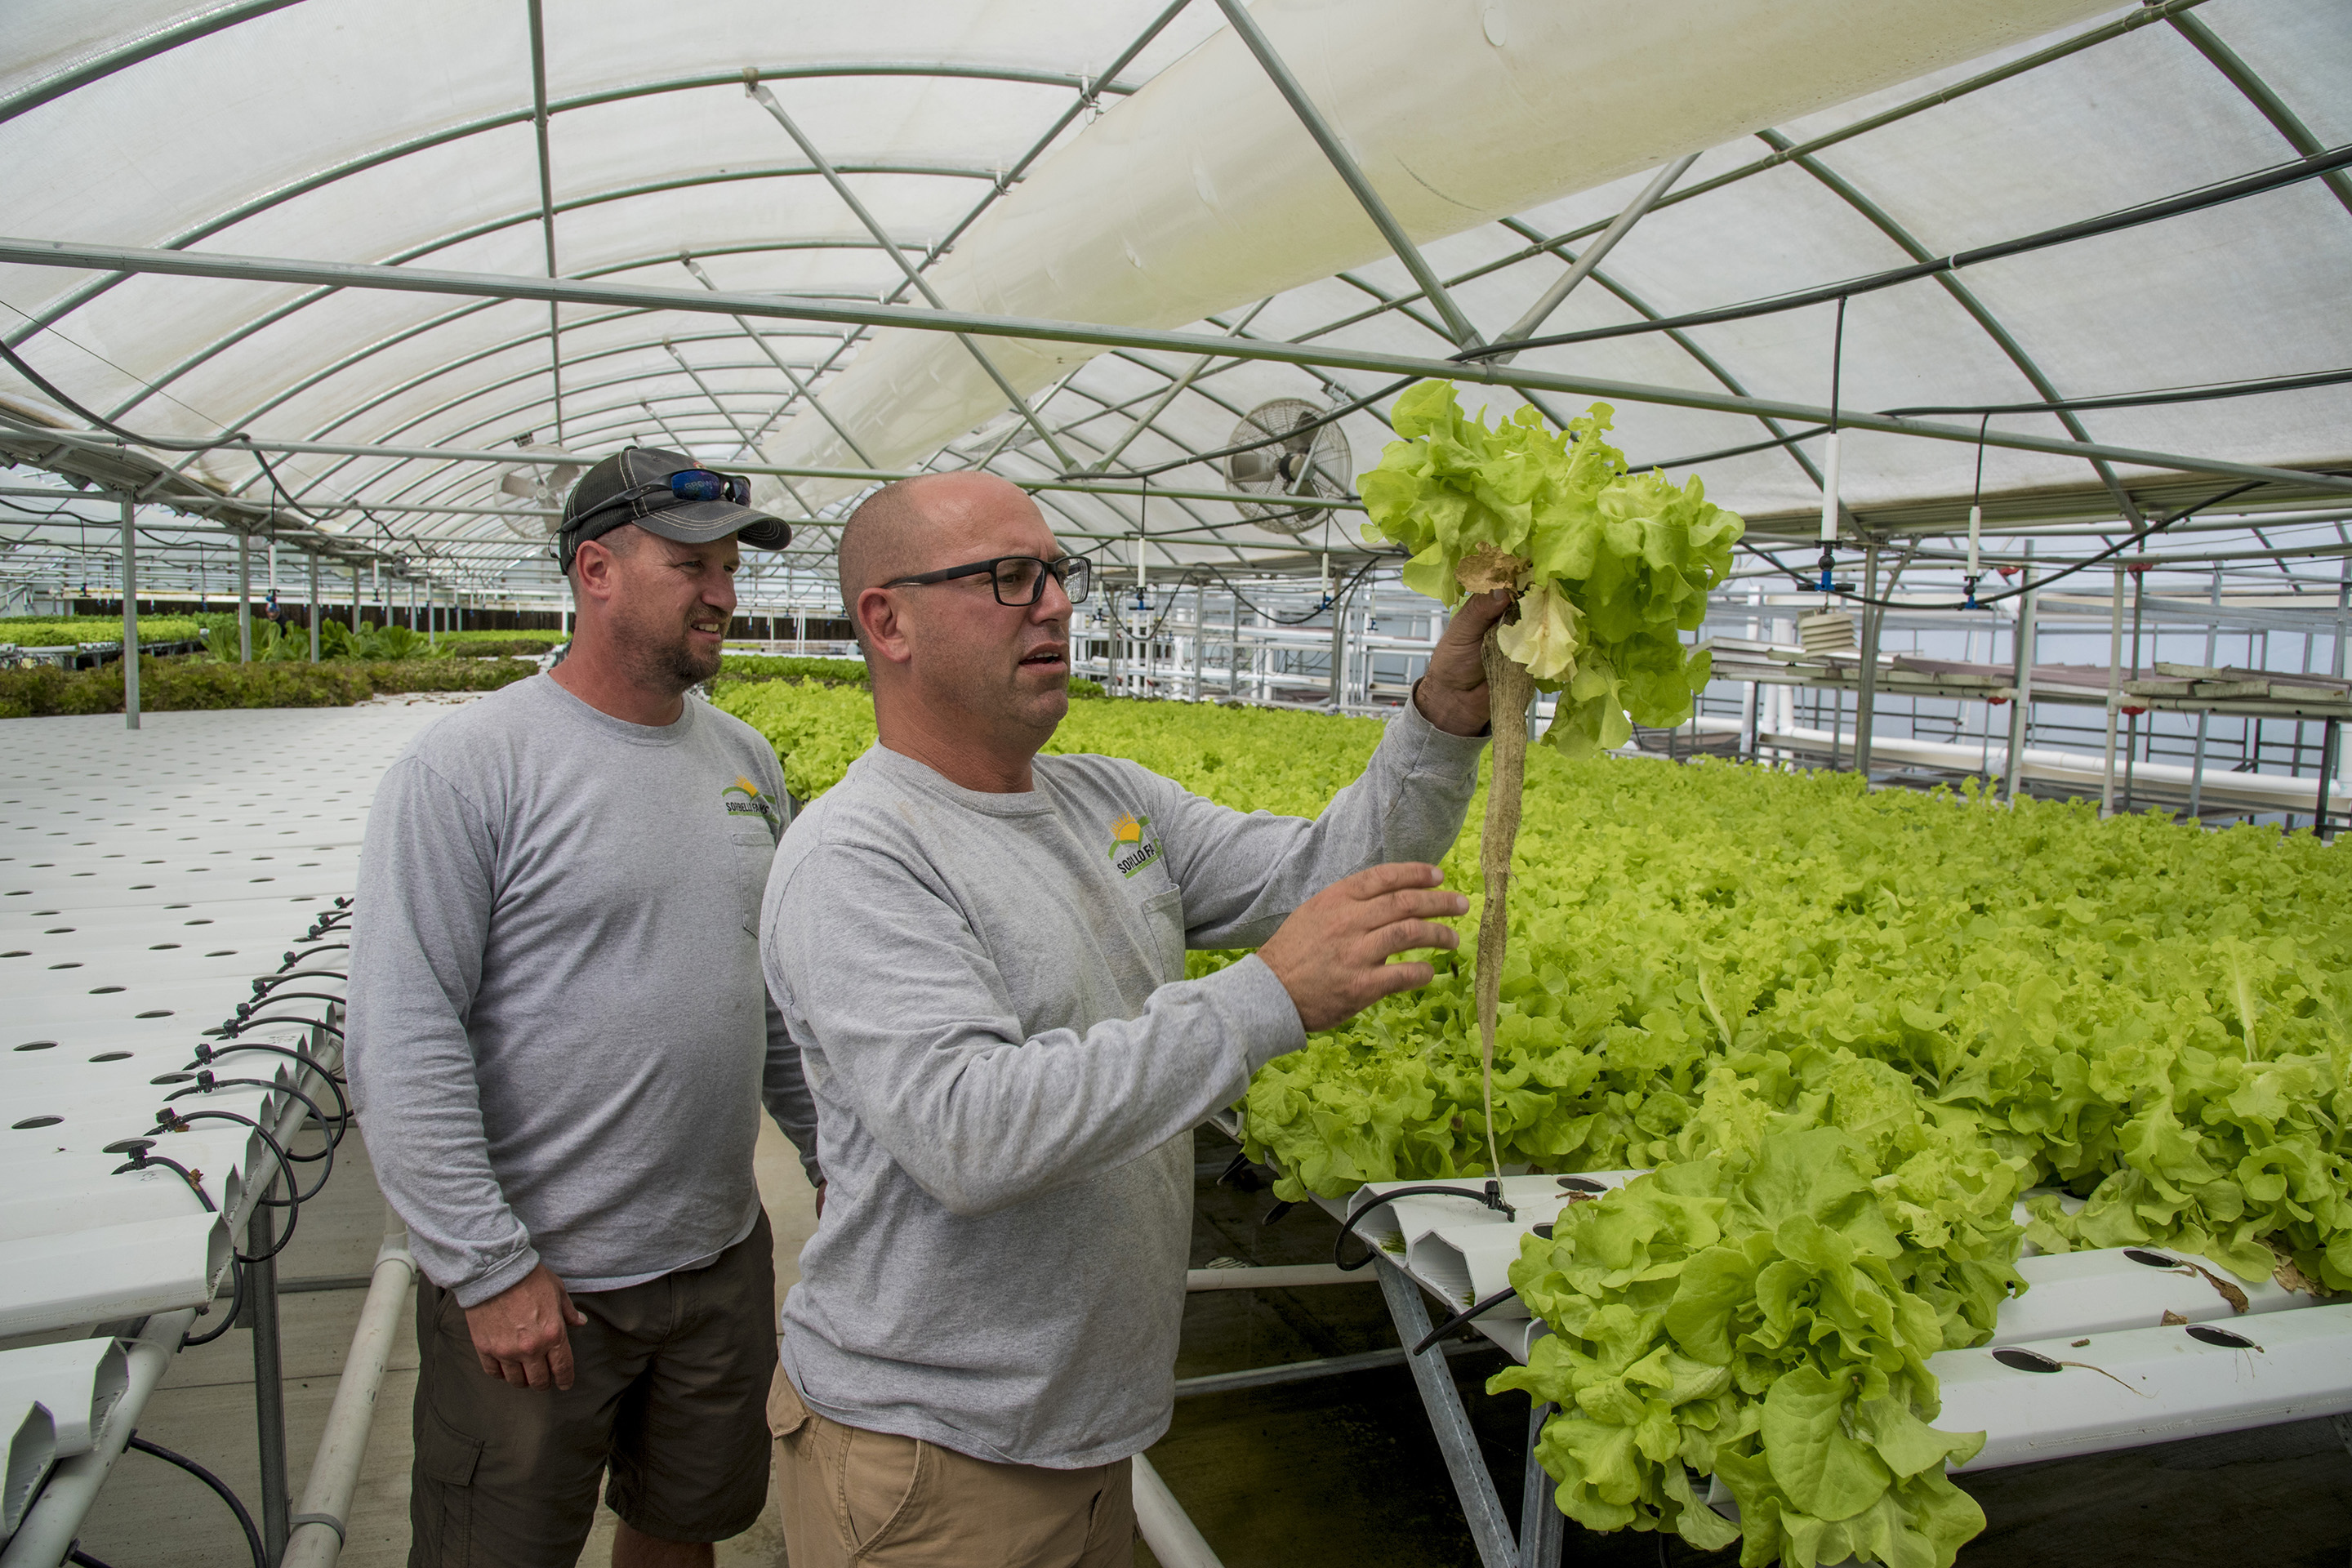 At Sorbello Farms, partners Steve Vazquez (left), and Kris Wilson check on the growth of bib lettuce growing in one of their greenhouses in Woolwich Township, N.J., Sept. 21, 2017.